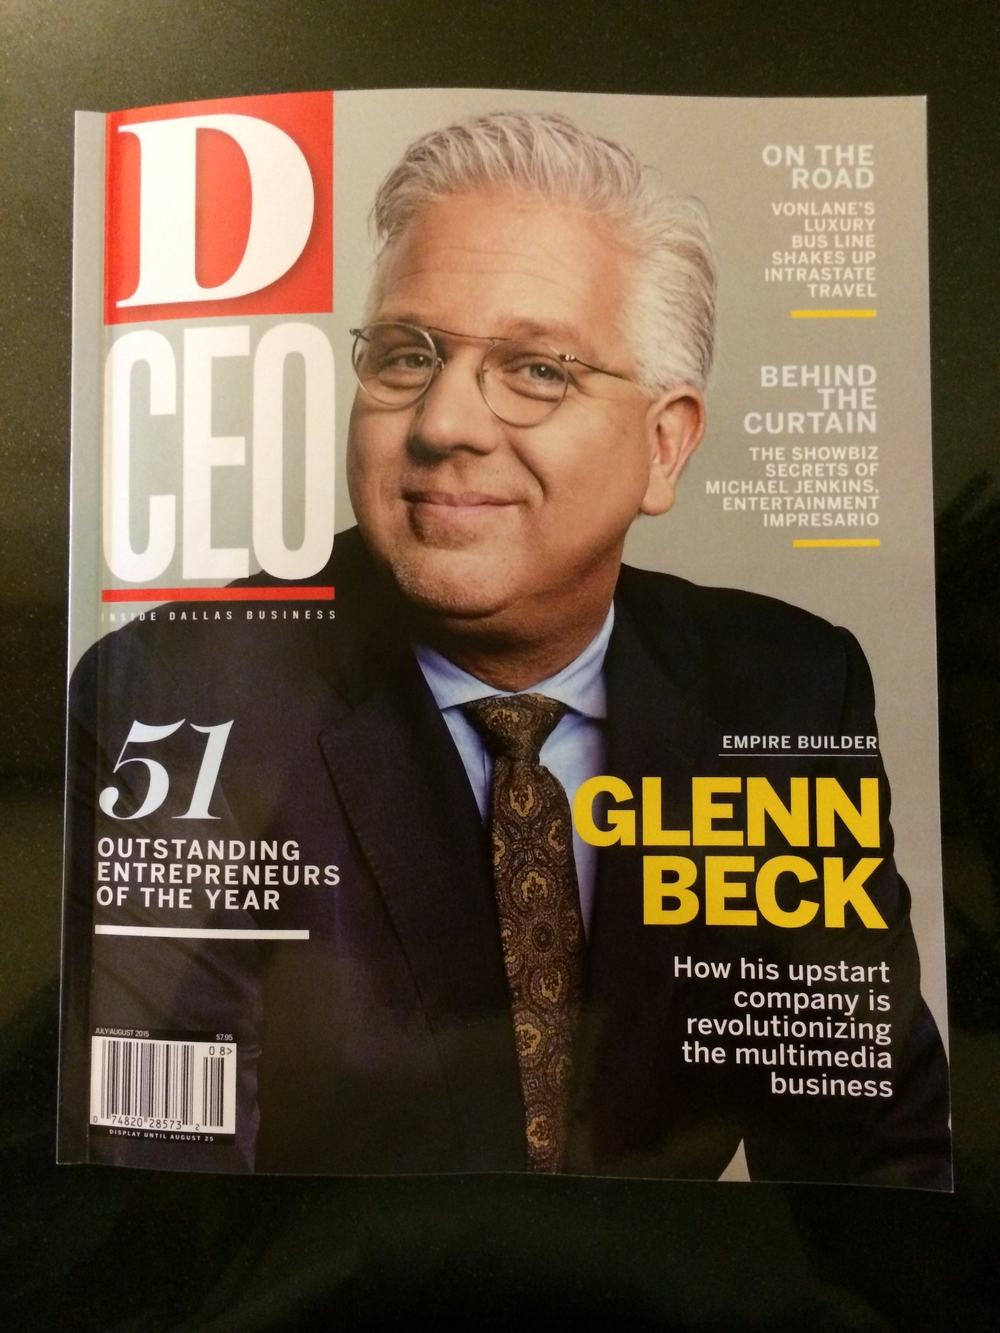 Glenn Beck was also honored at the Gala